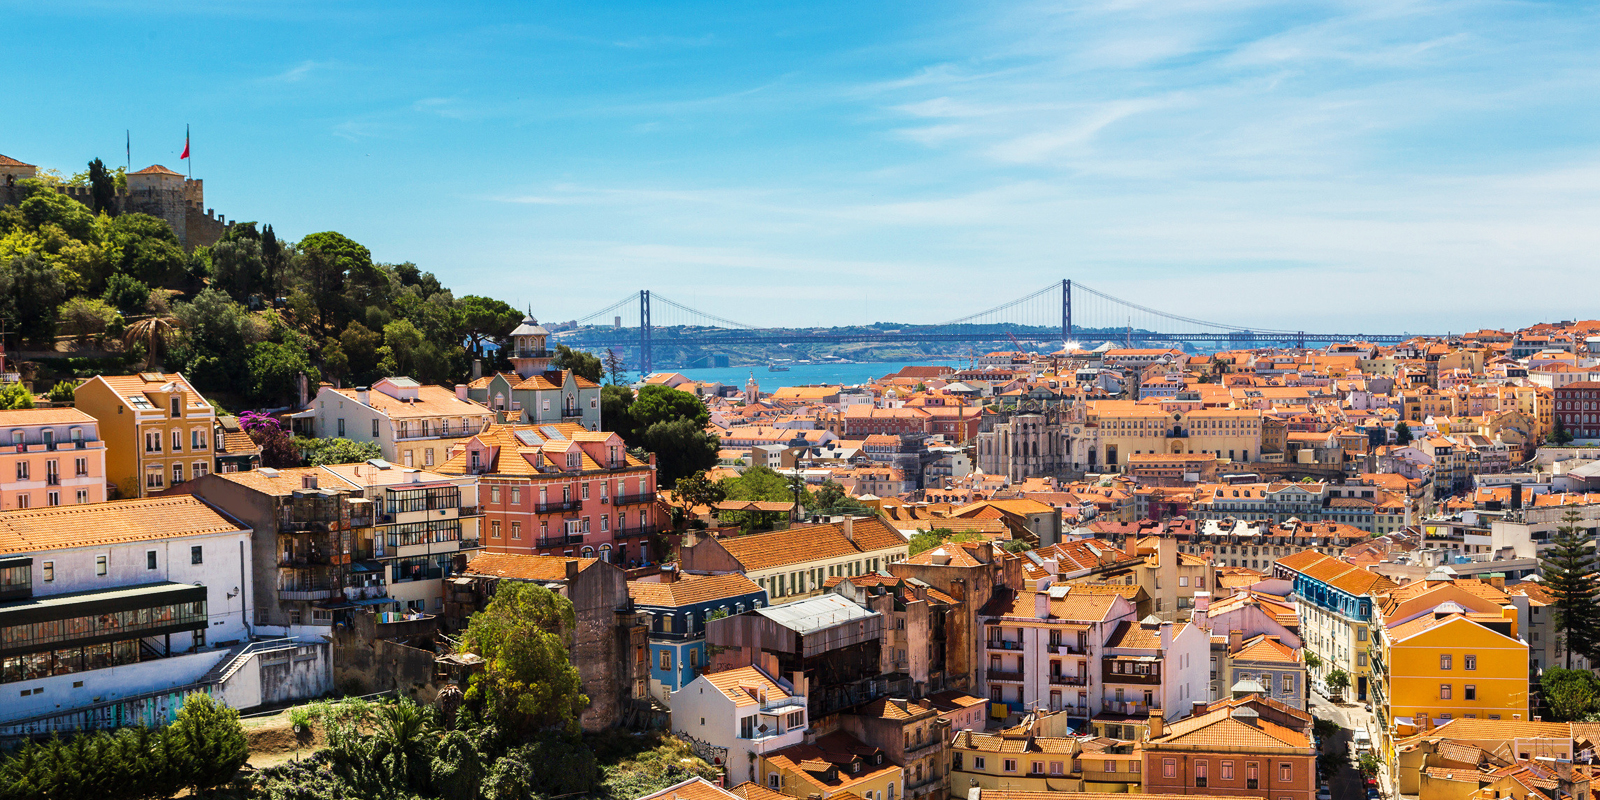 8.5% of the Property Sales in Portugal in 2019 Were to Non-Residents